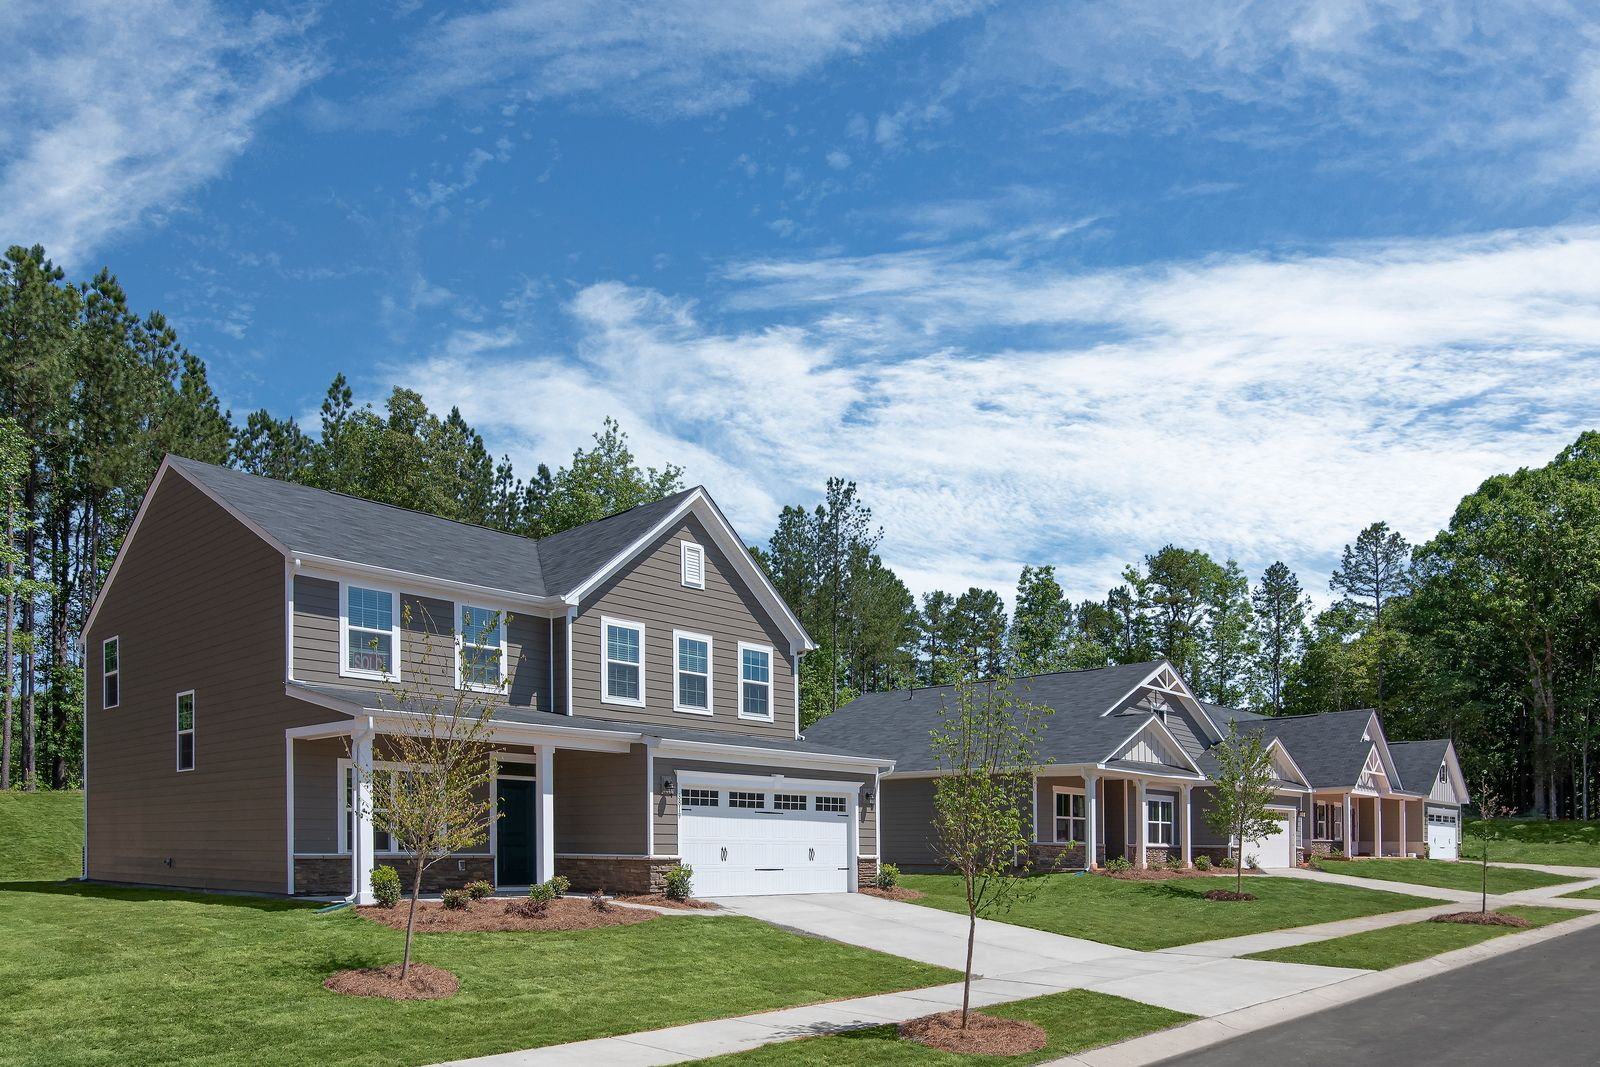 Huntersville Community with Spacious, Wooded Homesites:You can have it all at Chapel Grove... space between neighbors, a home that backs to trees, walking trails, and a convenient location.Schedule a visit!